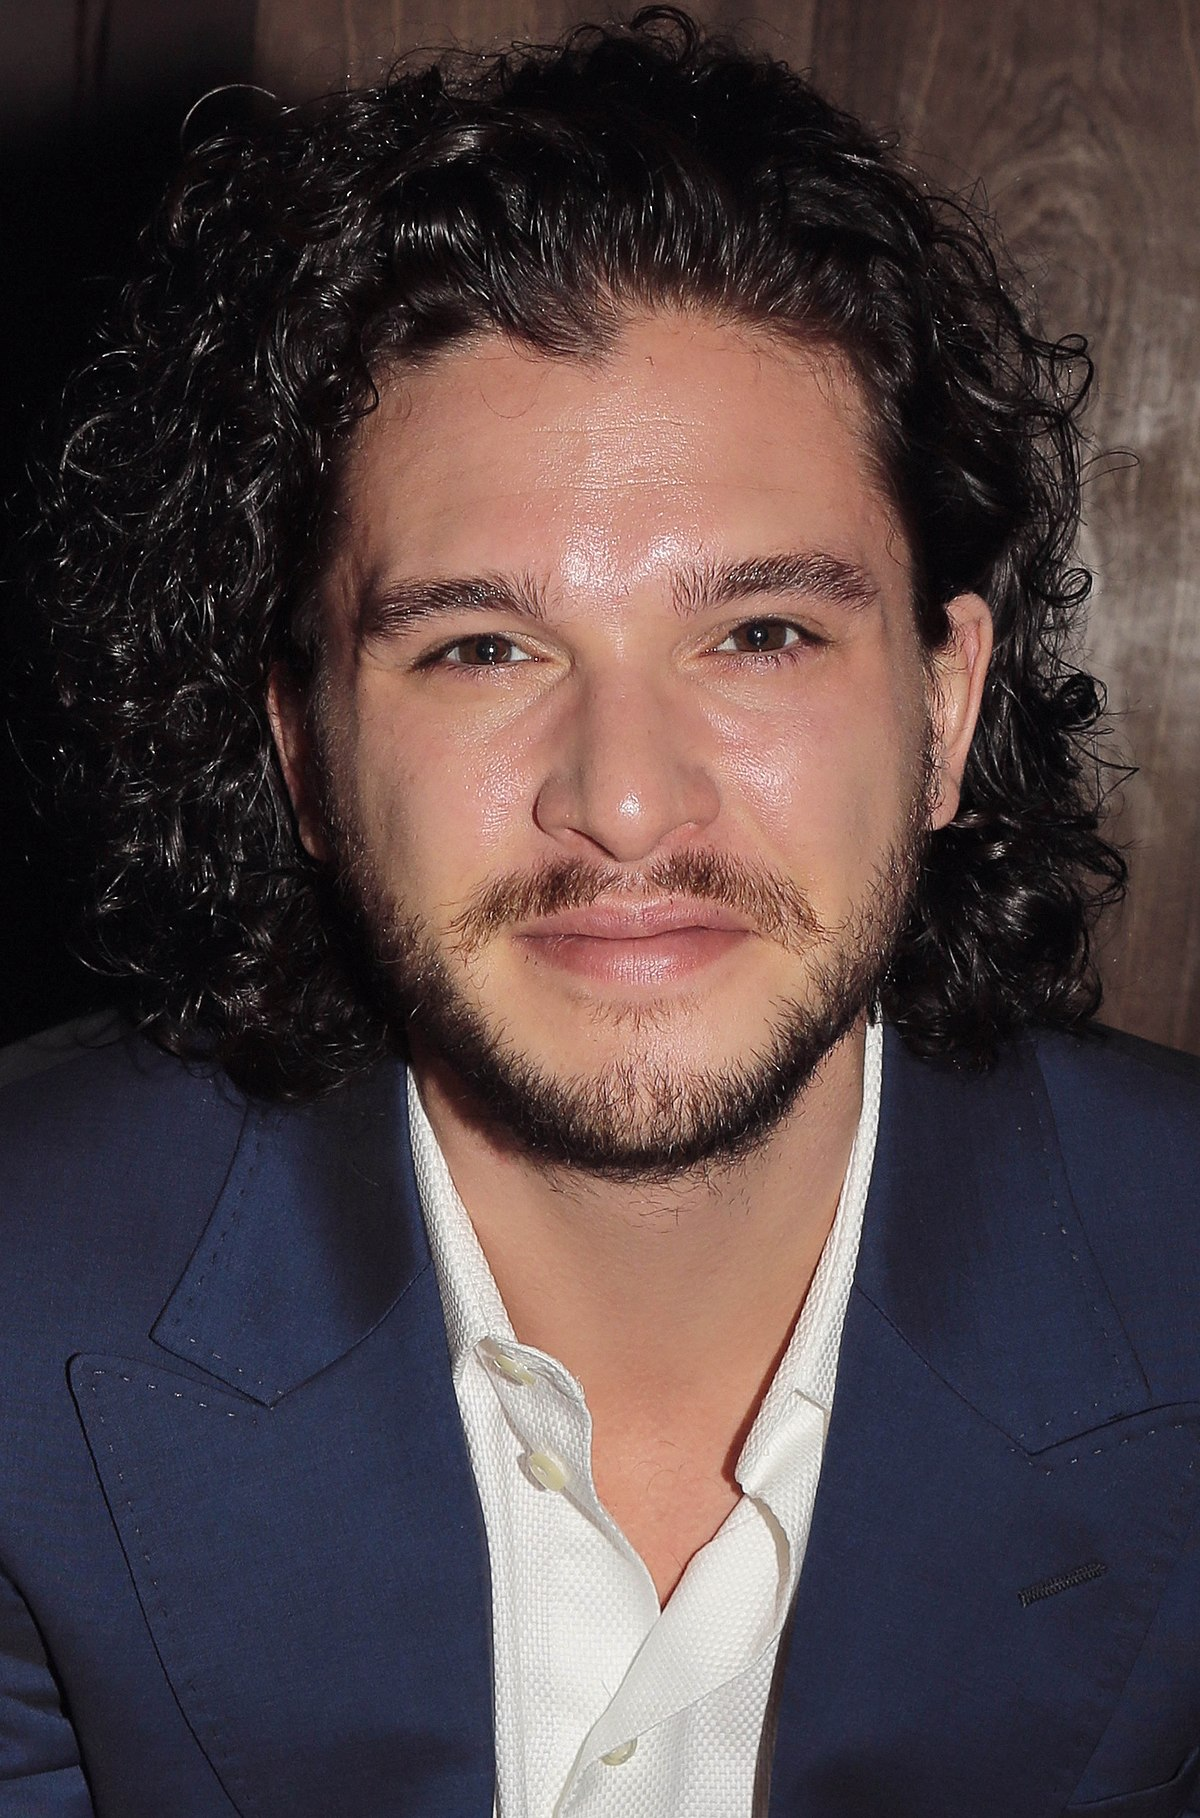 kit harington gifkit harington rose leslie, kit harington height, kit harington gif, kit harington 2016, kit harington vk, kit harington 2017, kit harington interview, kit harington films, kit harington short hair, kit harington bun, kit harington young, kit harington wiki, kit harington jimmy choo, kit harington brimstone, kit harington net worth, kit harington haircut, kit harington gif hunt, kit harington doctor faustus, kit harington gallery, kit harington imdb